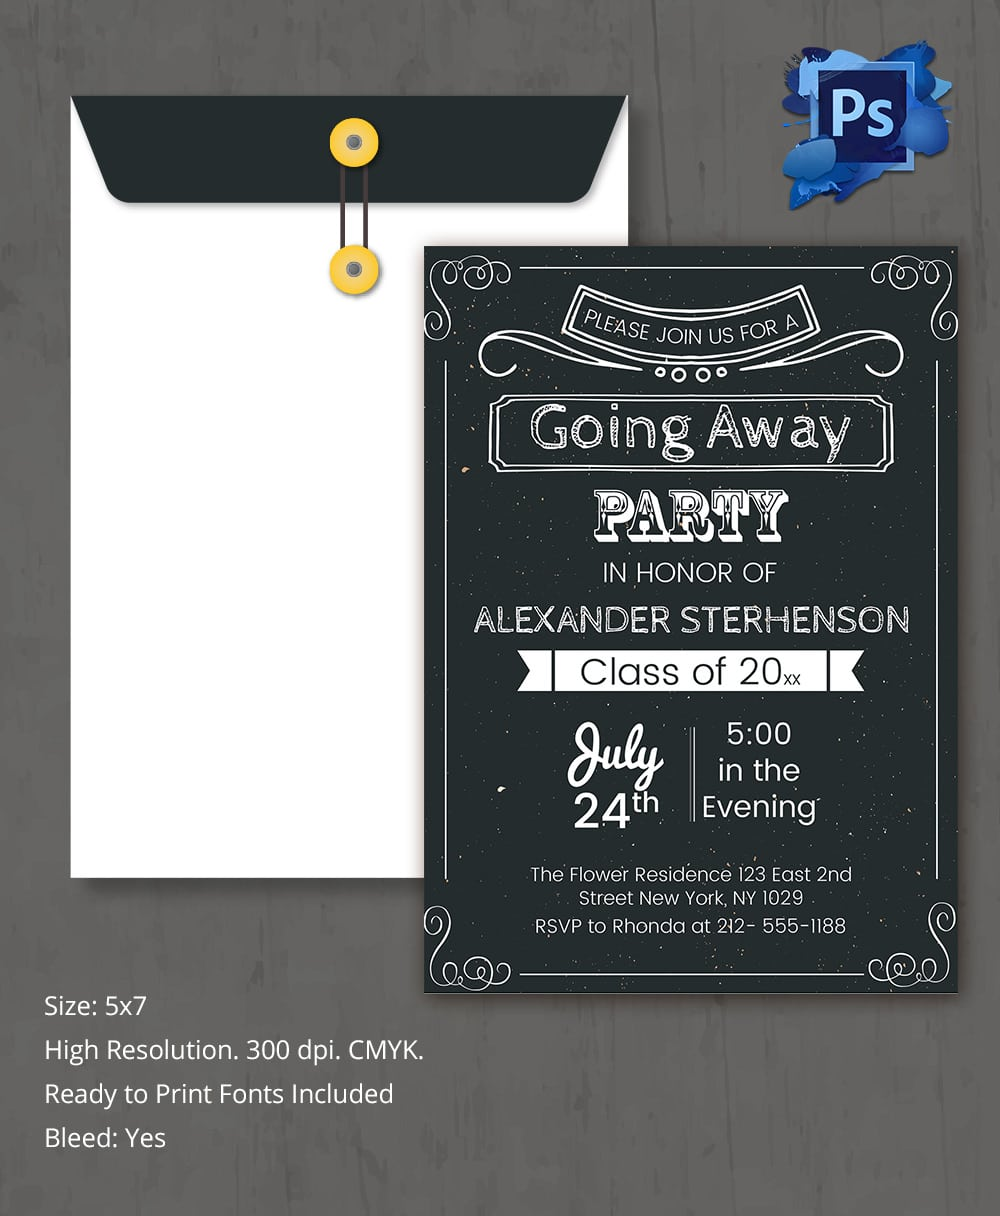 Going Away Party Invitation Templates Mickey Mouse Invitations - Party invitation template: going away party invitation templates